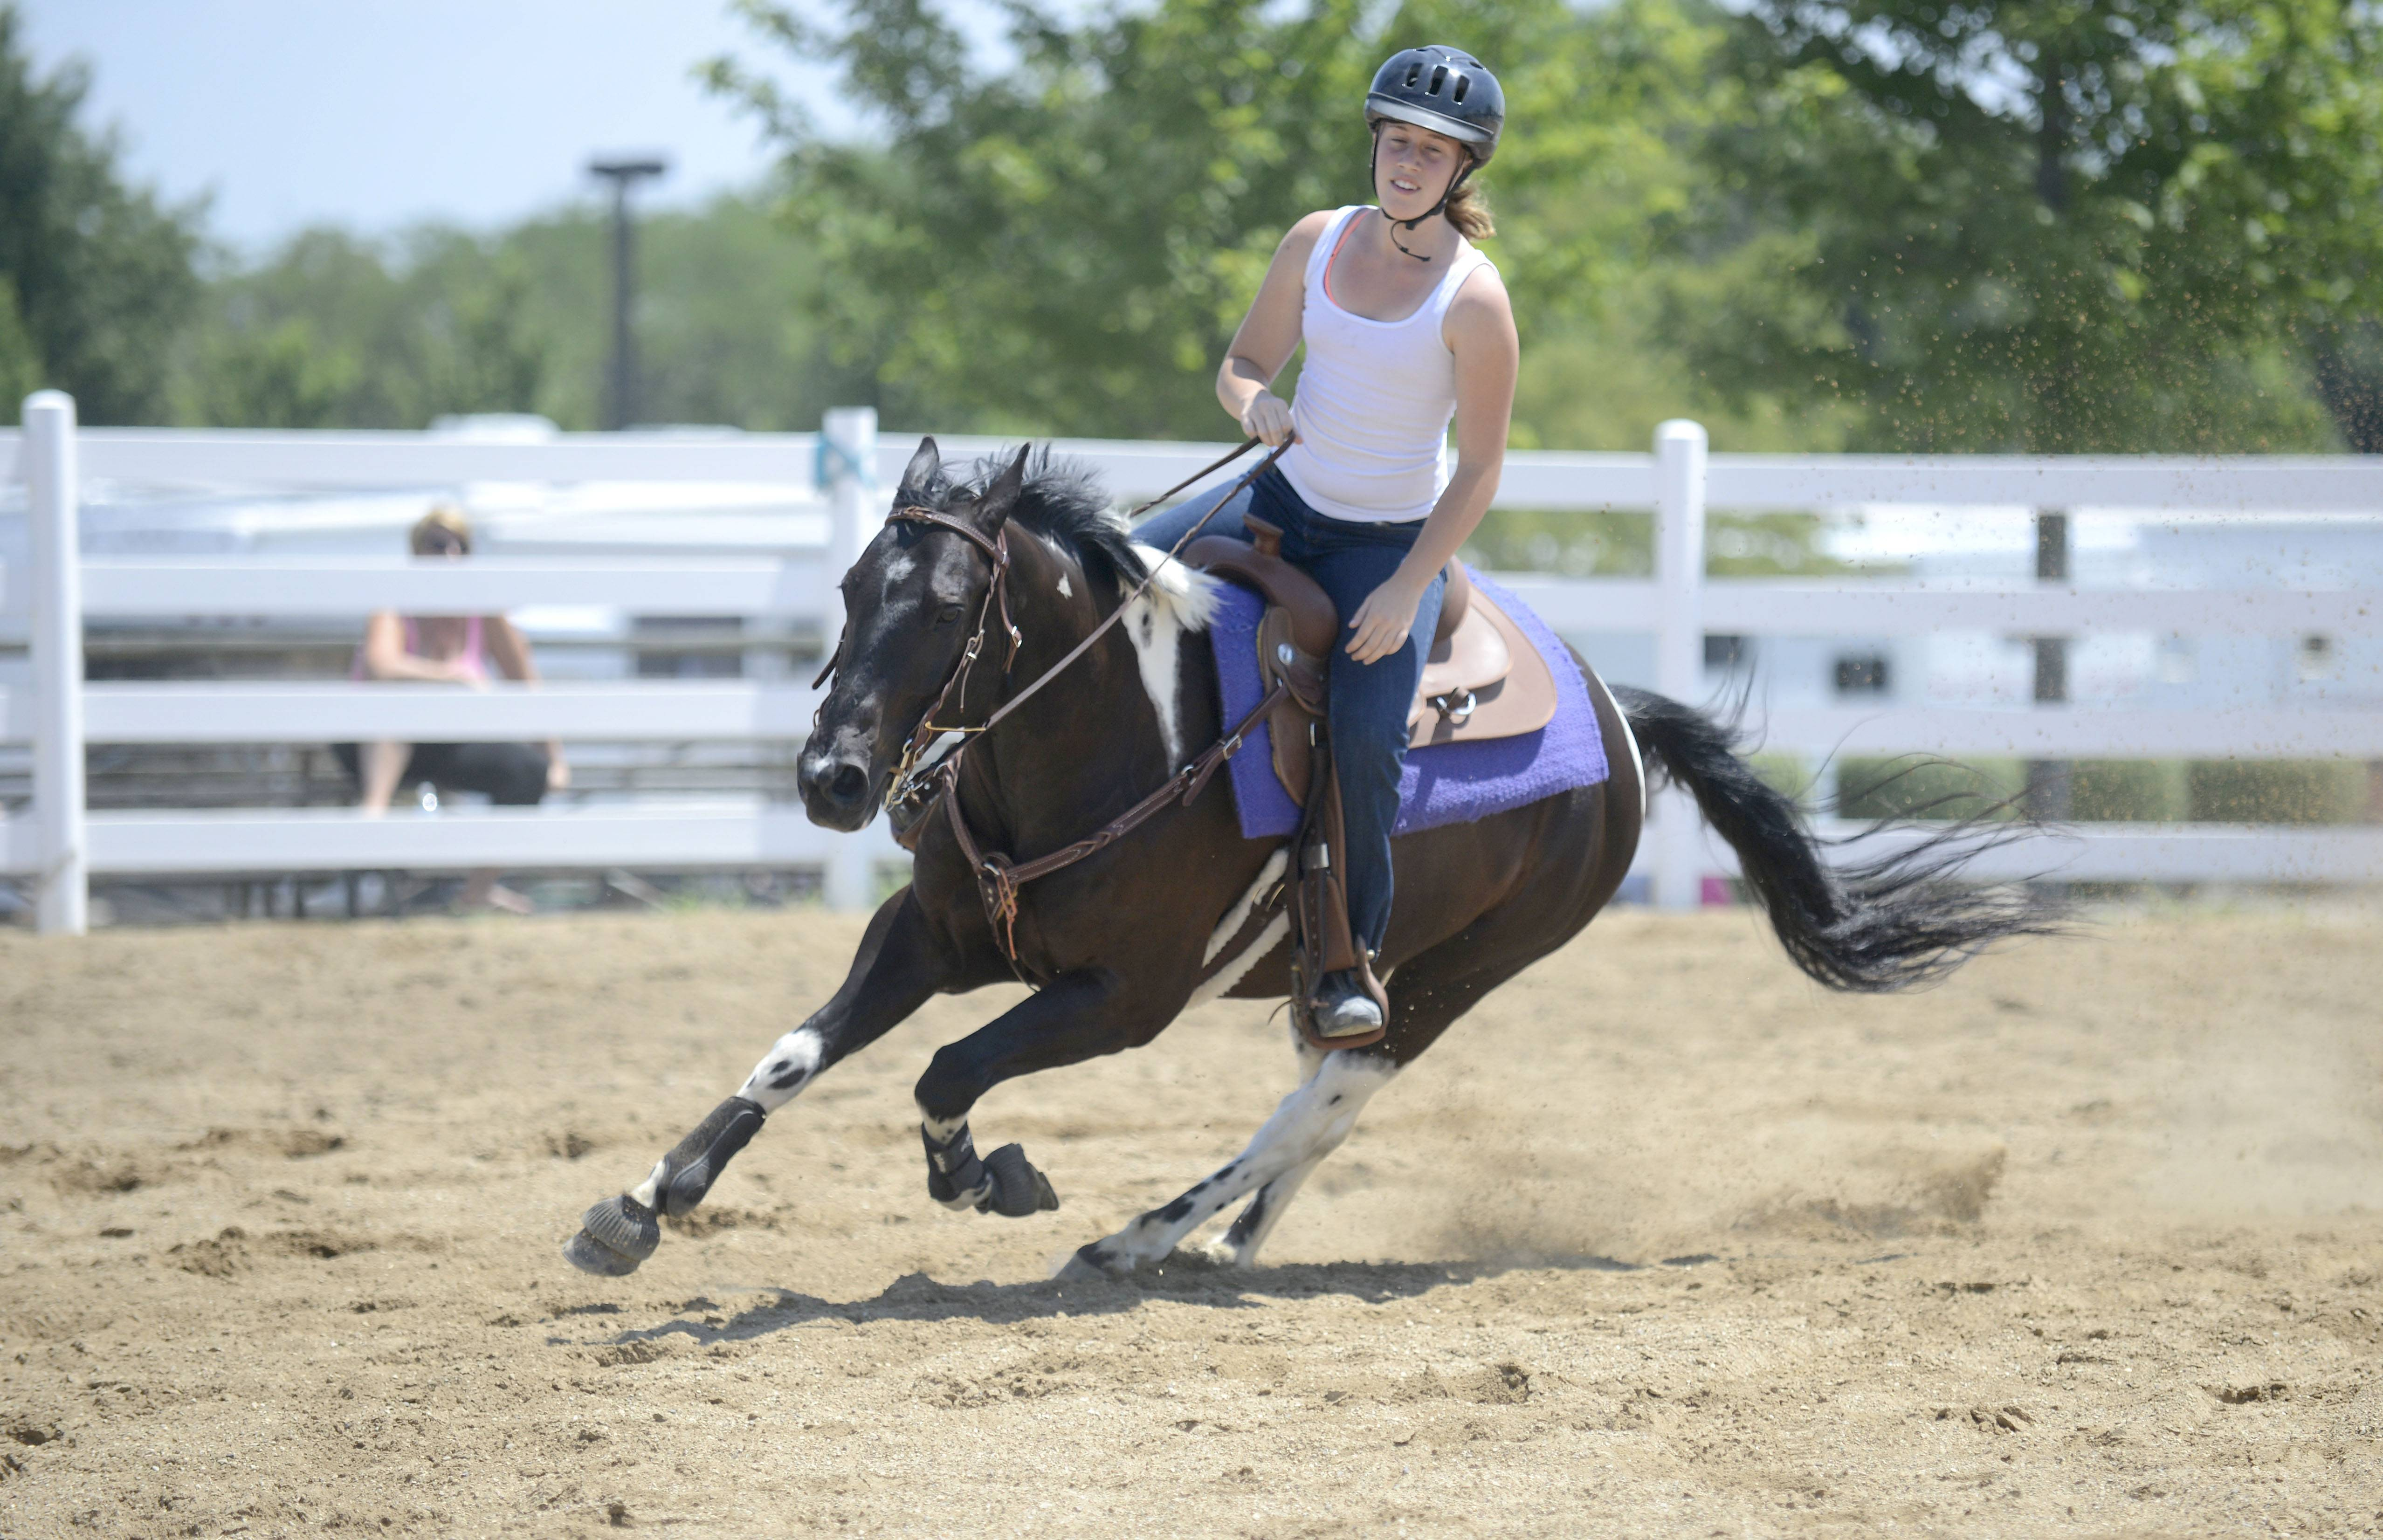 Hannah Wallace, 16, of Sugar Grove, exercises her horse, Jimmy, 9, at the Kane County Fair last year. Wallace is a member of the Y-Not 4-H club out of Maple Park.